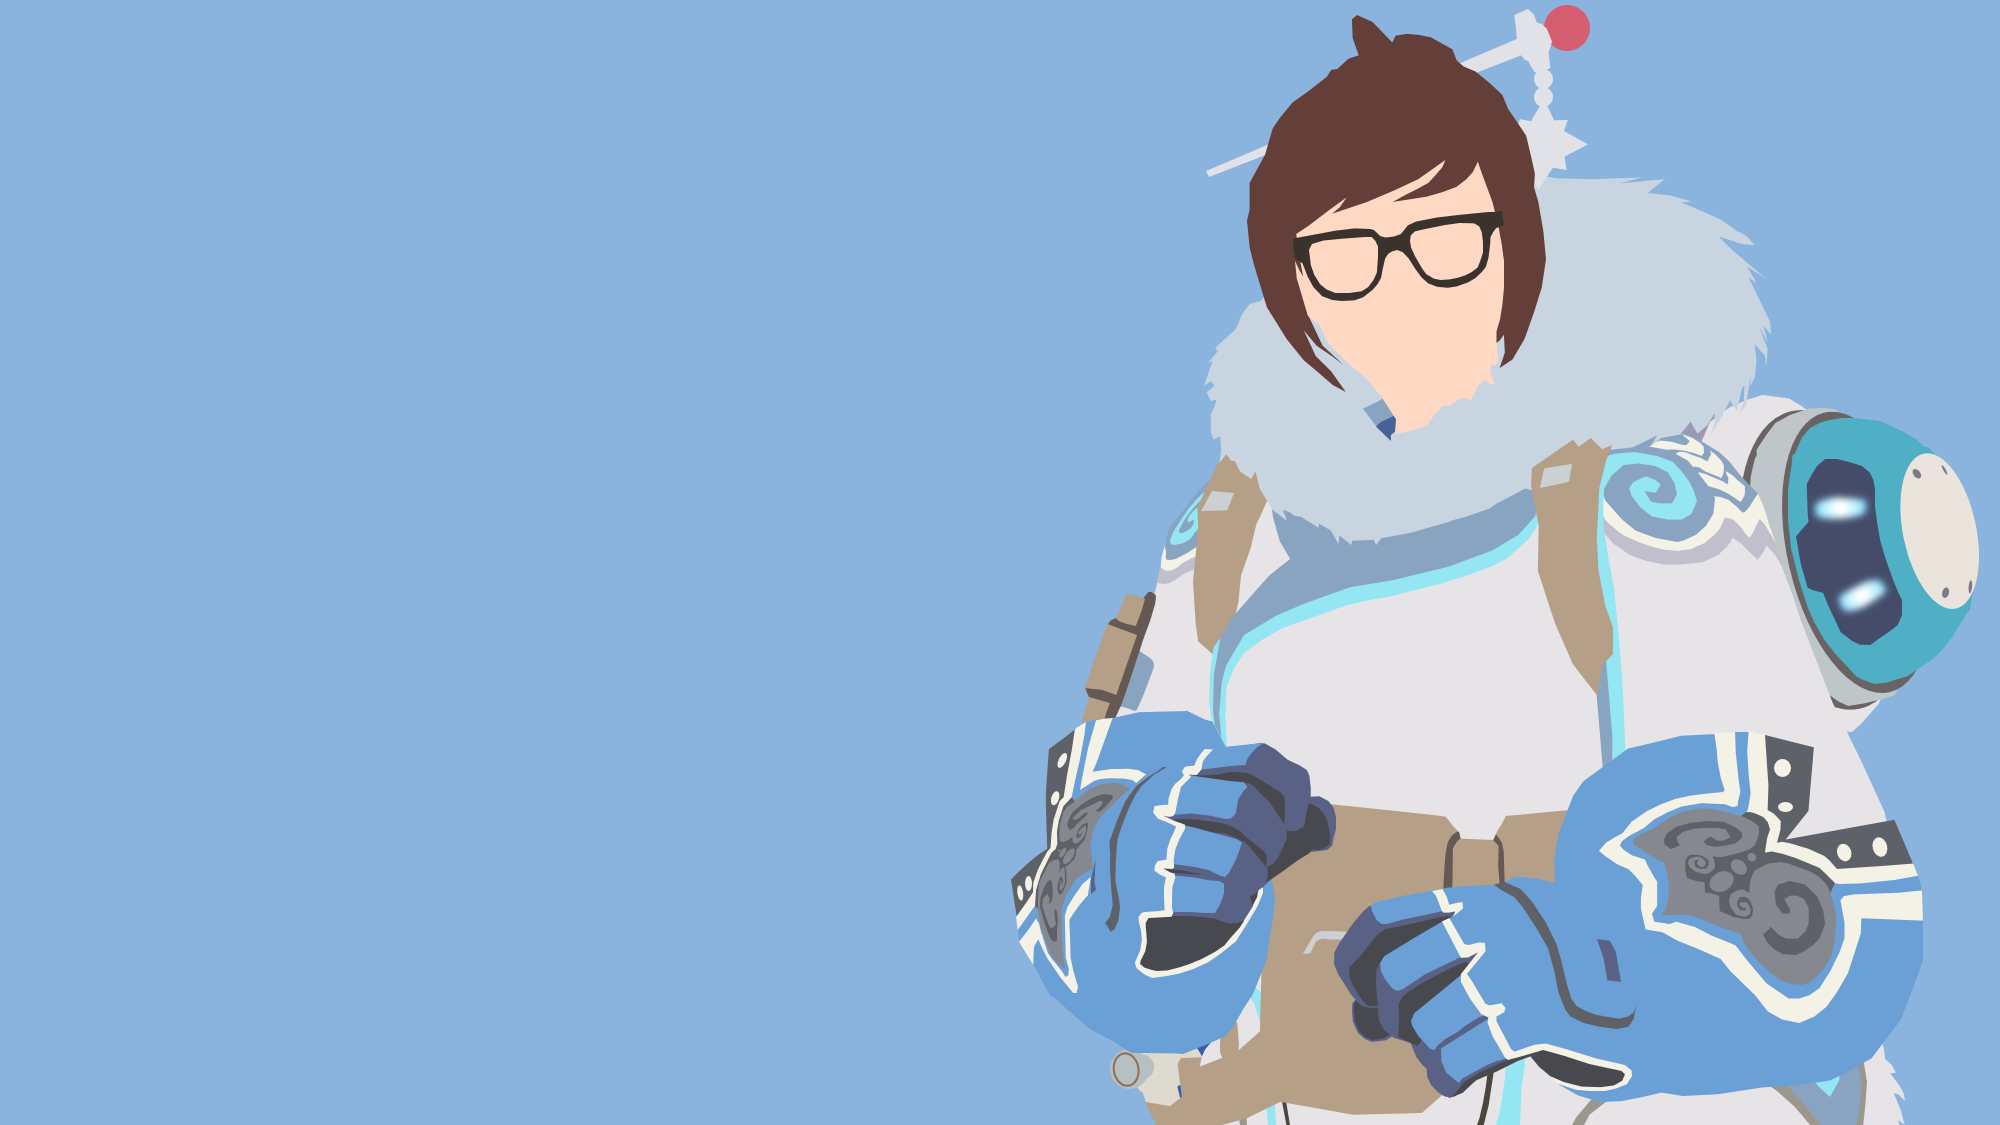 Overwatch minimalist clipart banner transparent download Mei from Overwatch by Reverendtundra on DeviantArt banner transparent download